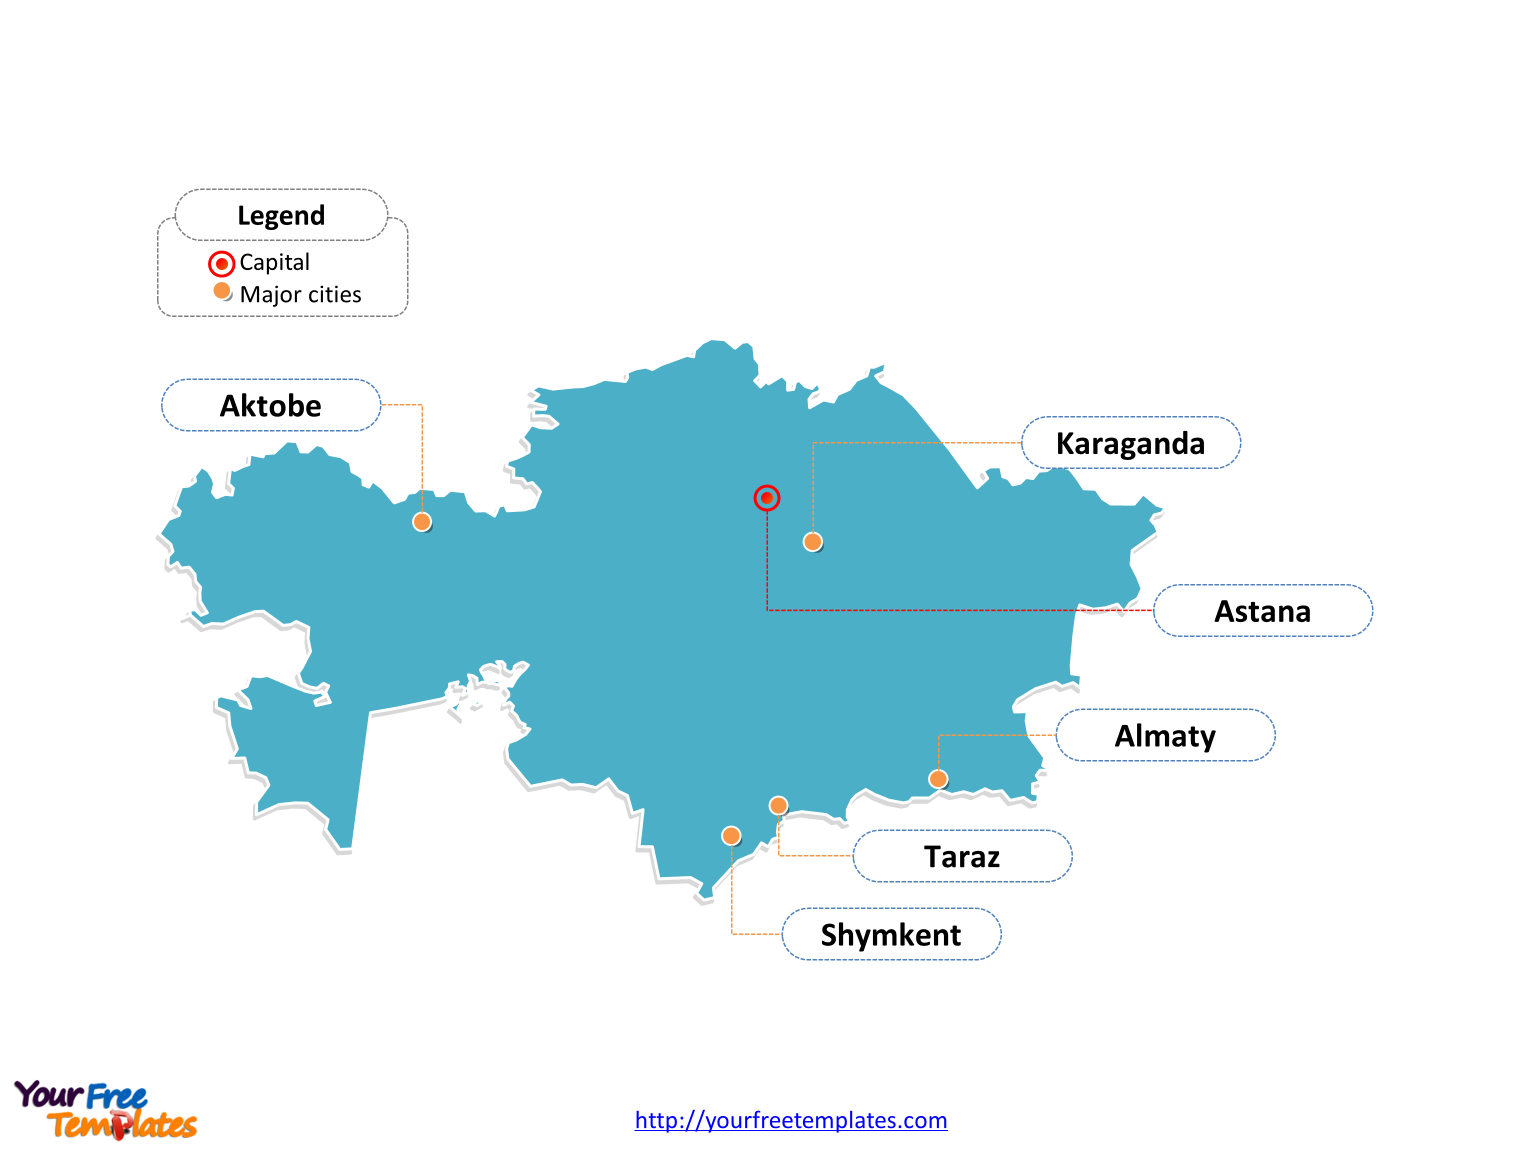 Free Kazakhstan Editable Map Free PowerPoint Templates - Taraz map